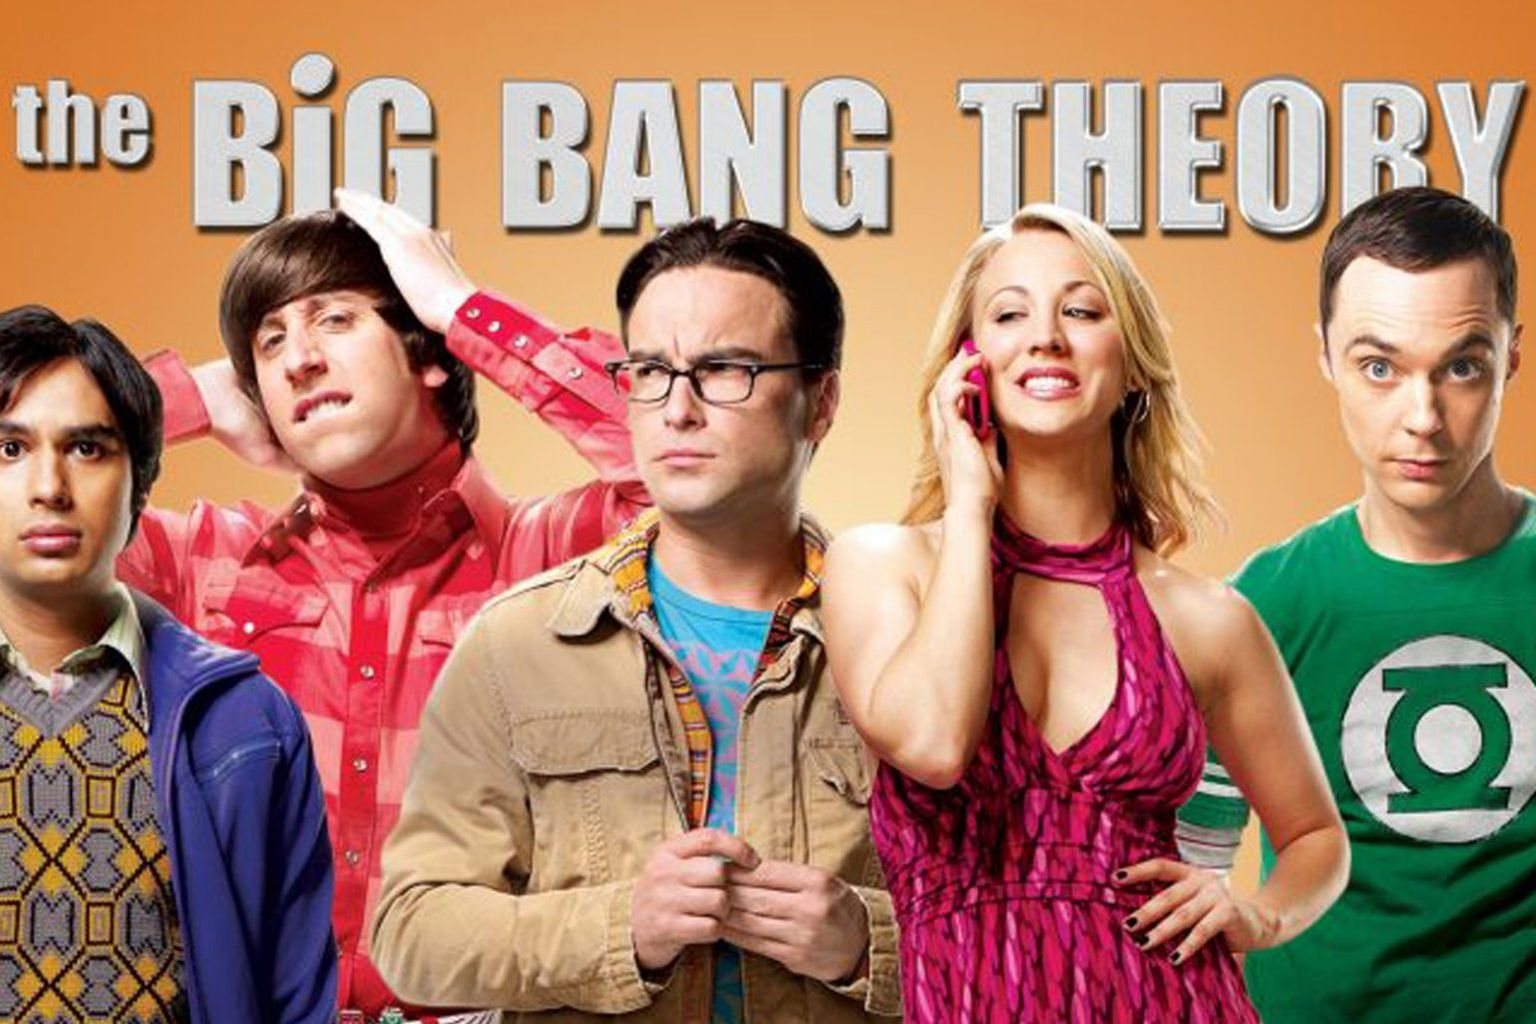 The Big Bang Theory e o DISC